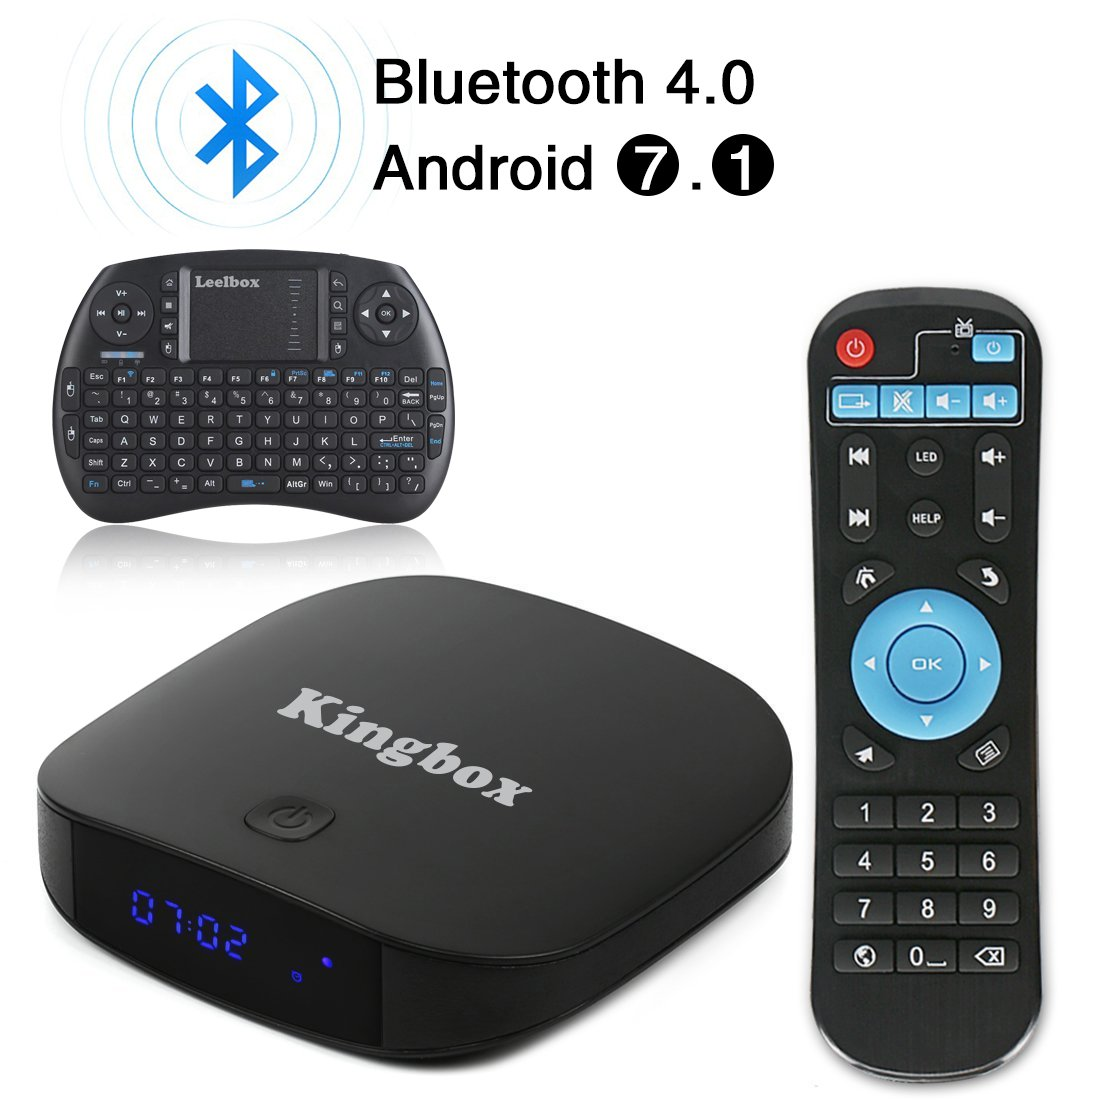 2018 Kingbox Android 7.1 TV Box with Free Wireless Keyboard, K1 Plus Android Box Support 4K (60Hz) Full HDMI / H.265 / Bluetooth 4.0 / 2.4GHz WiFi Android Smart TV Box (2G RAM / 8G ROM) by kingbox